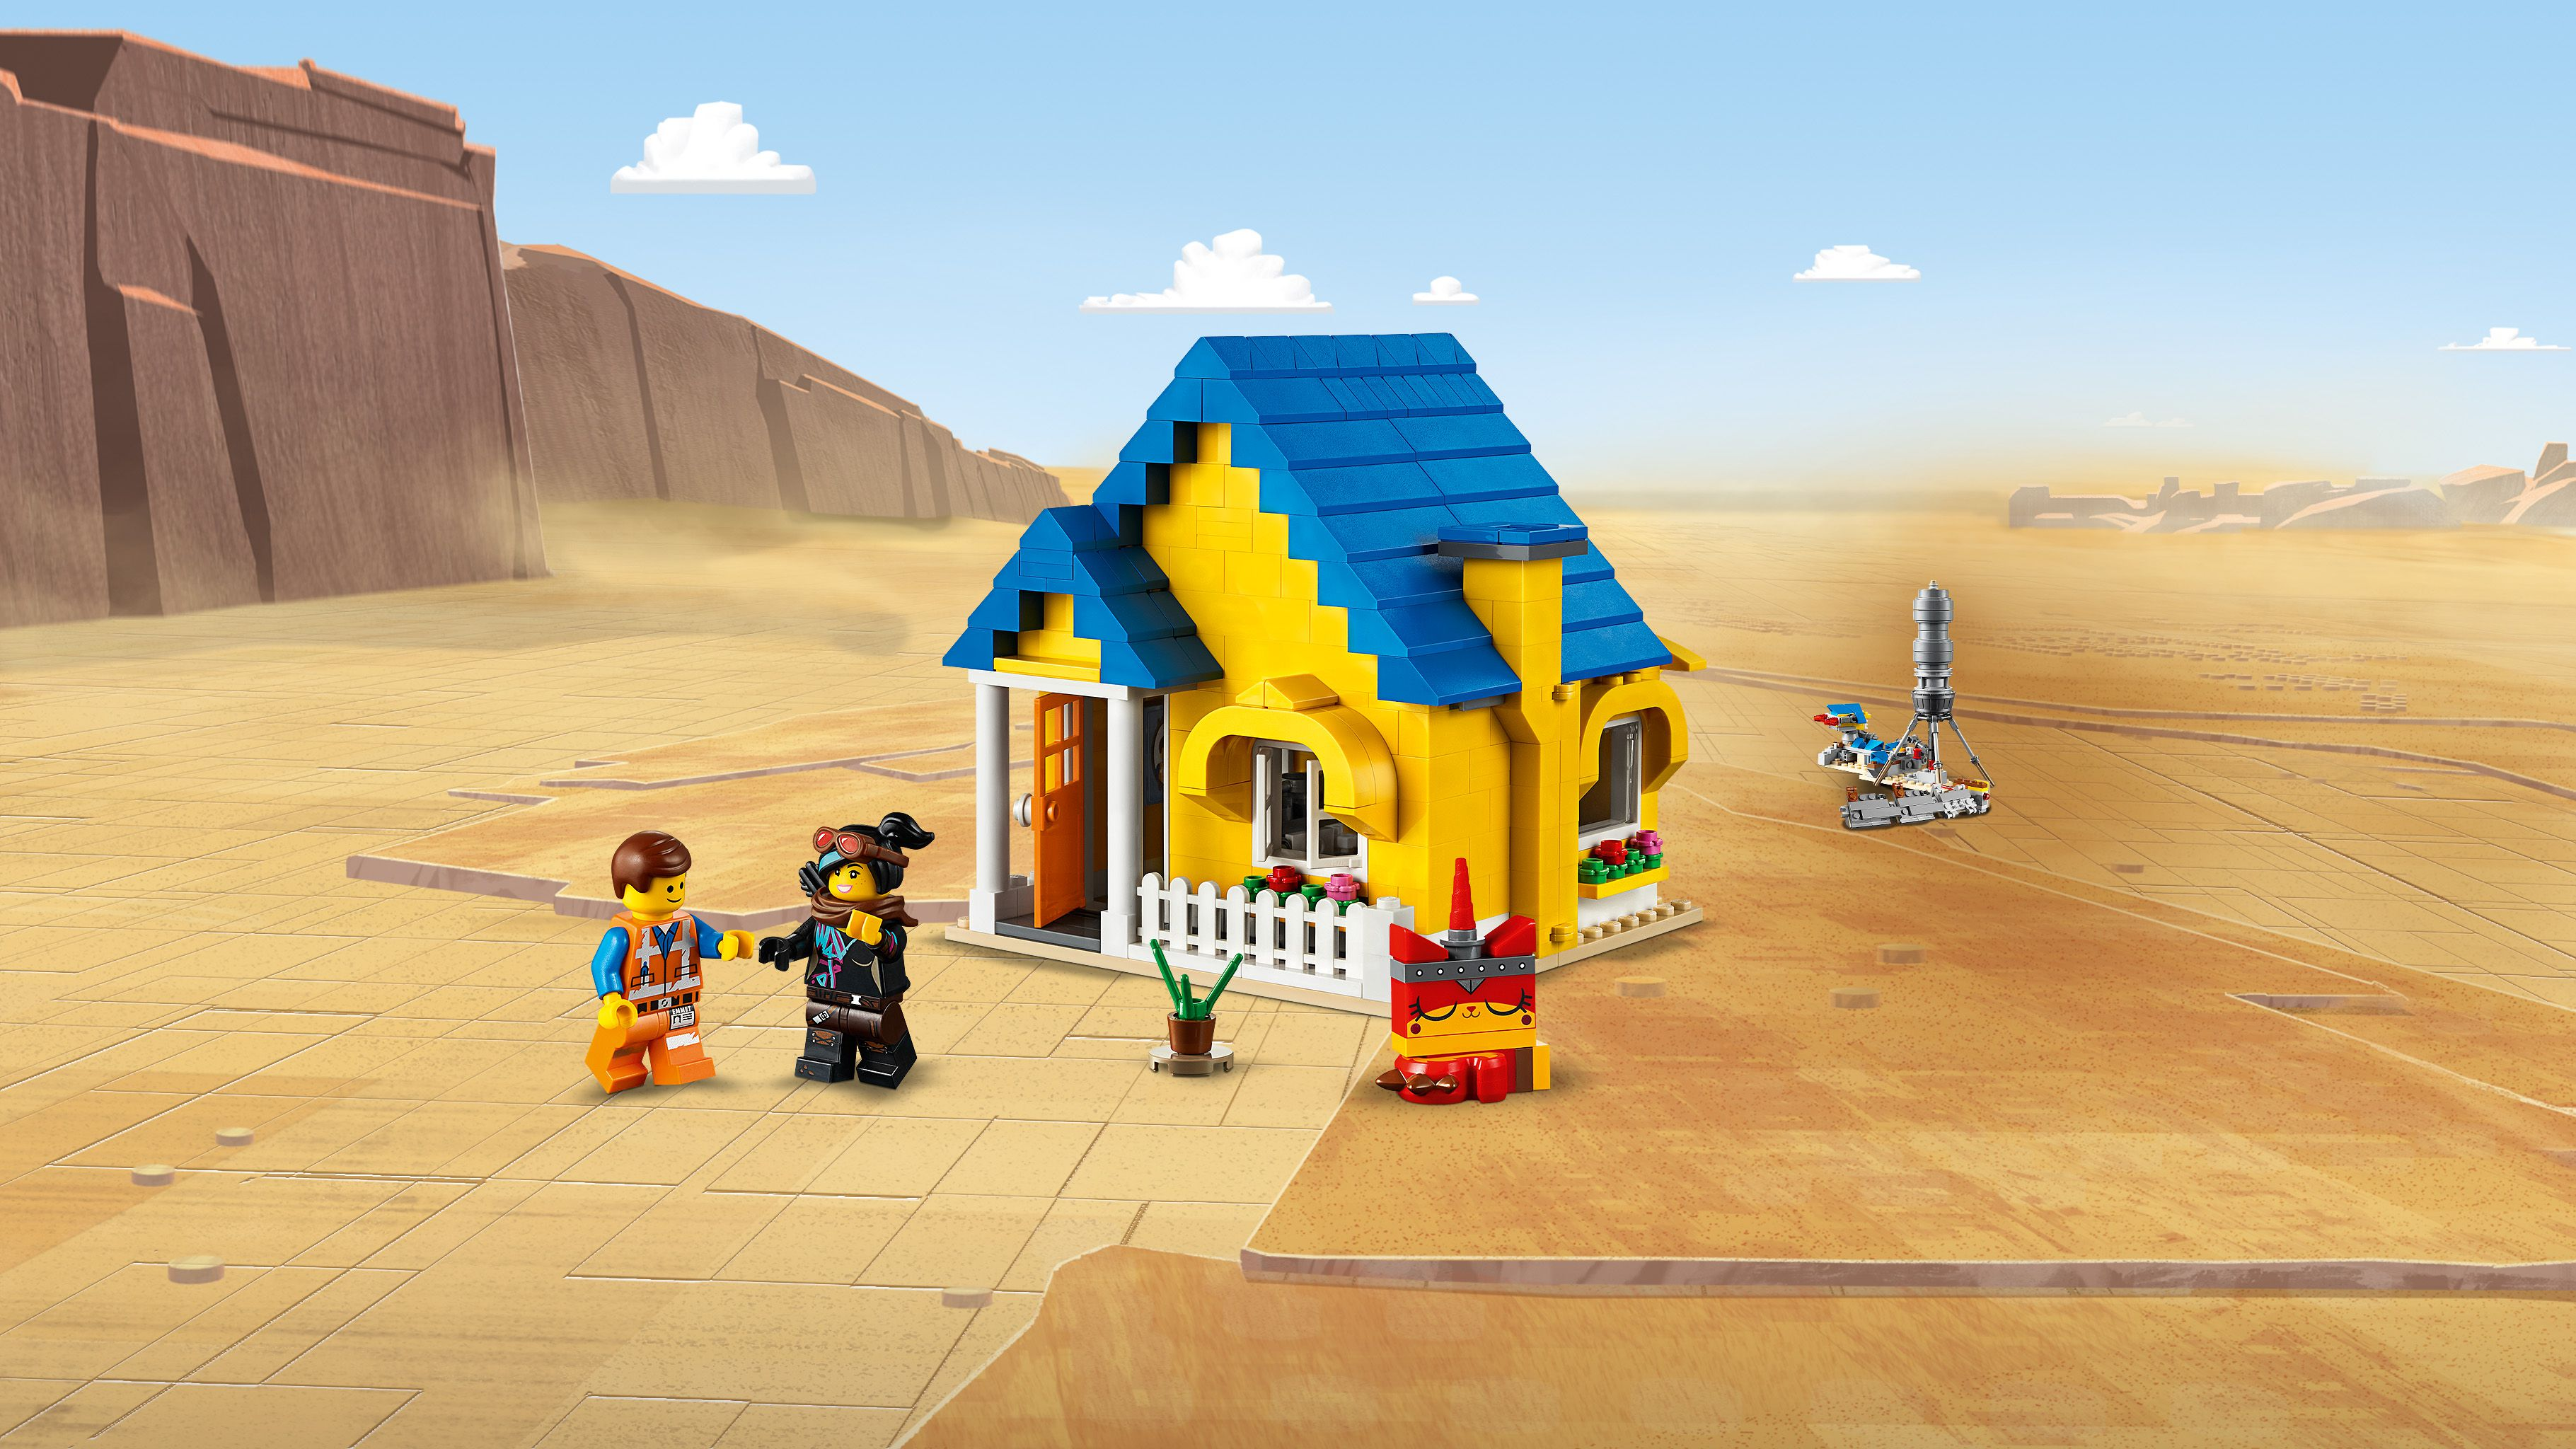 LEGO Movie 2 sets